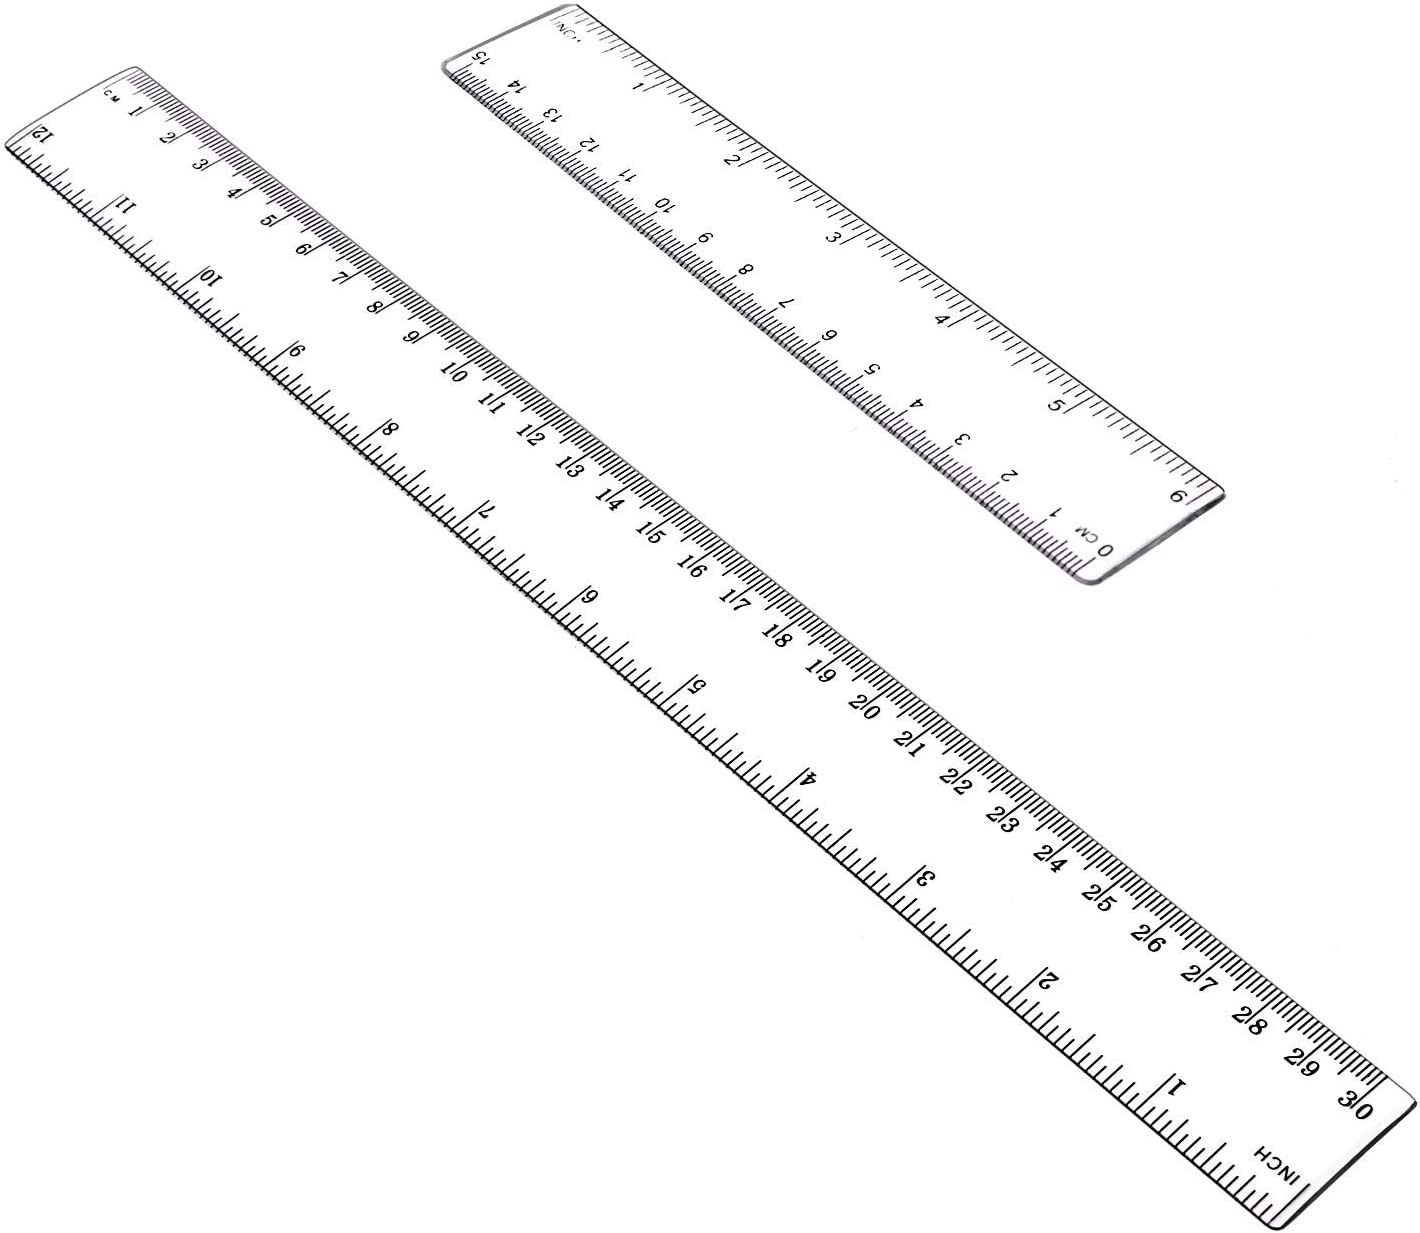 Amuoc Stainless Steel Ruler and Metal Rule Kit with Conversion Table Silver, 12 Inch, 6 Inch